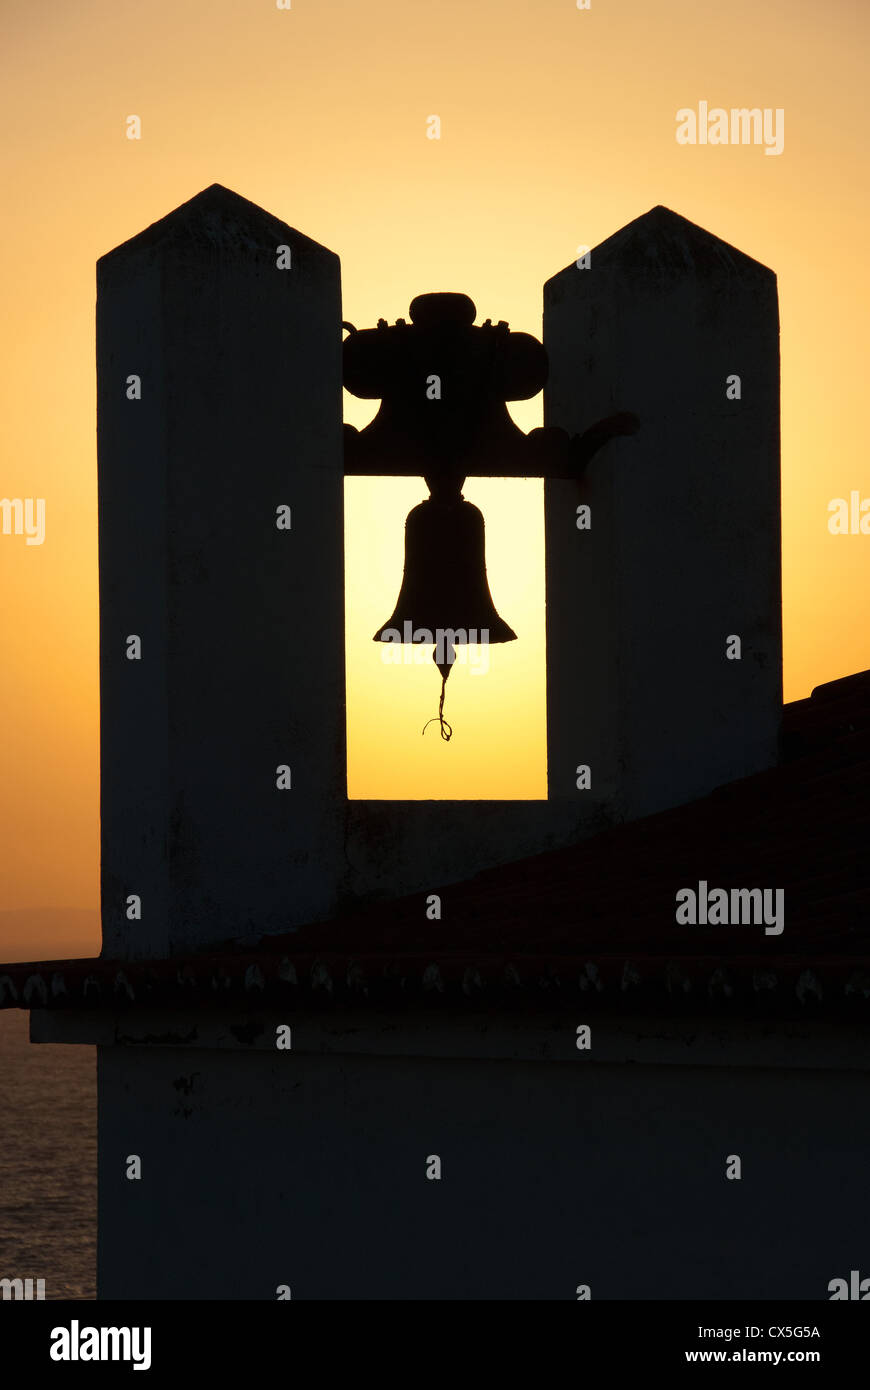 ALGARVE, PORTUGAL. A church campanile silhouetted against the setting sun. 2012. - Stock Image